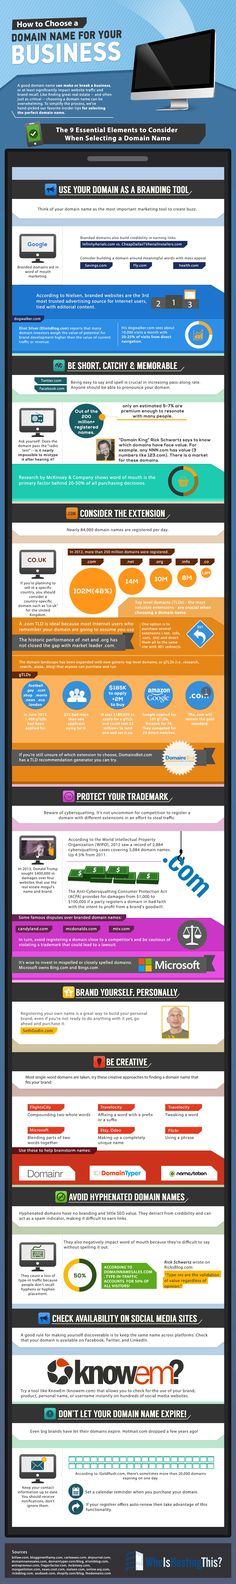 How to Choose a Domain Name [Infographic] by Who Is Hosting This: The Blog